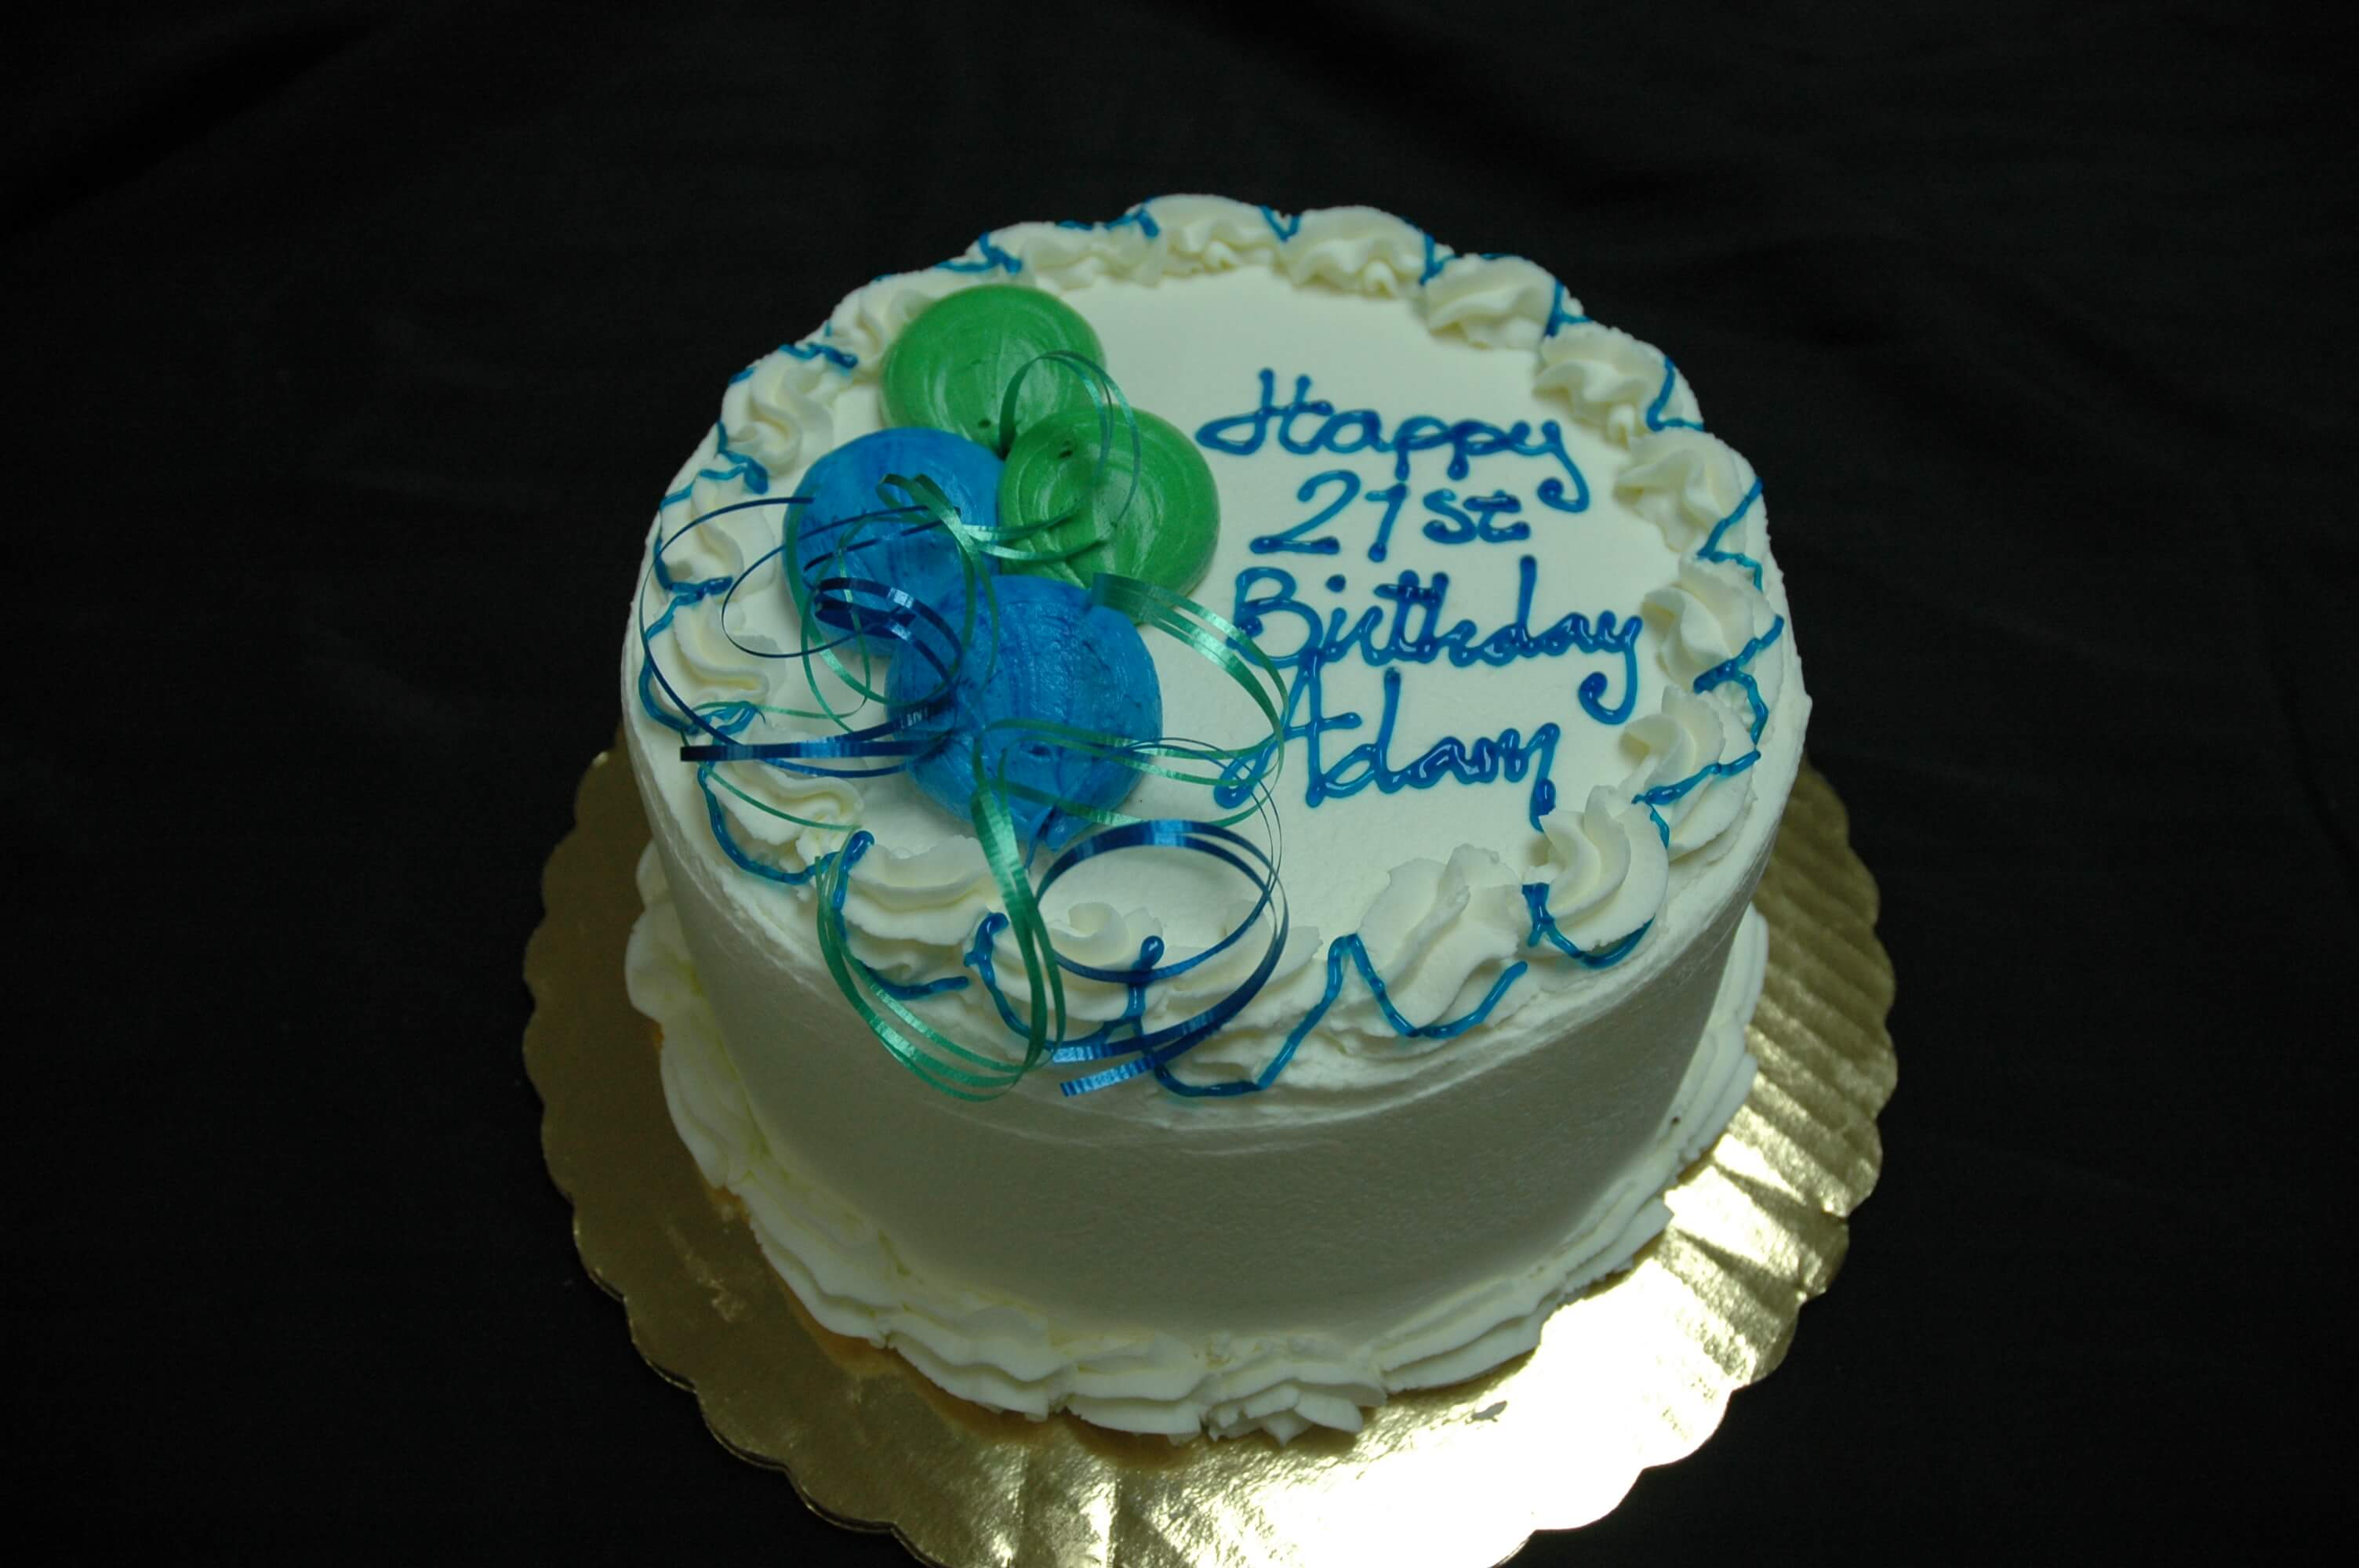 McArthur's Bakery Custom Cake with Green and Blue Balloons